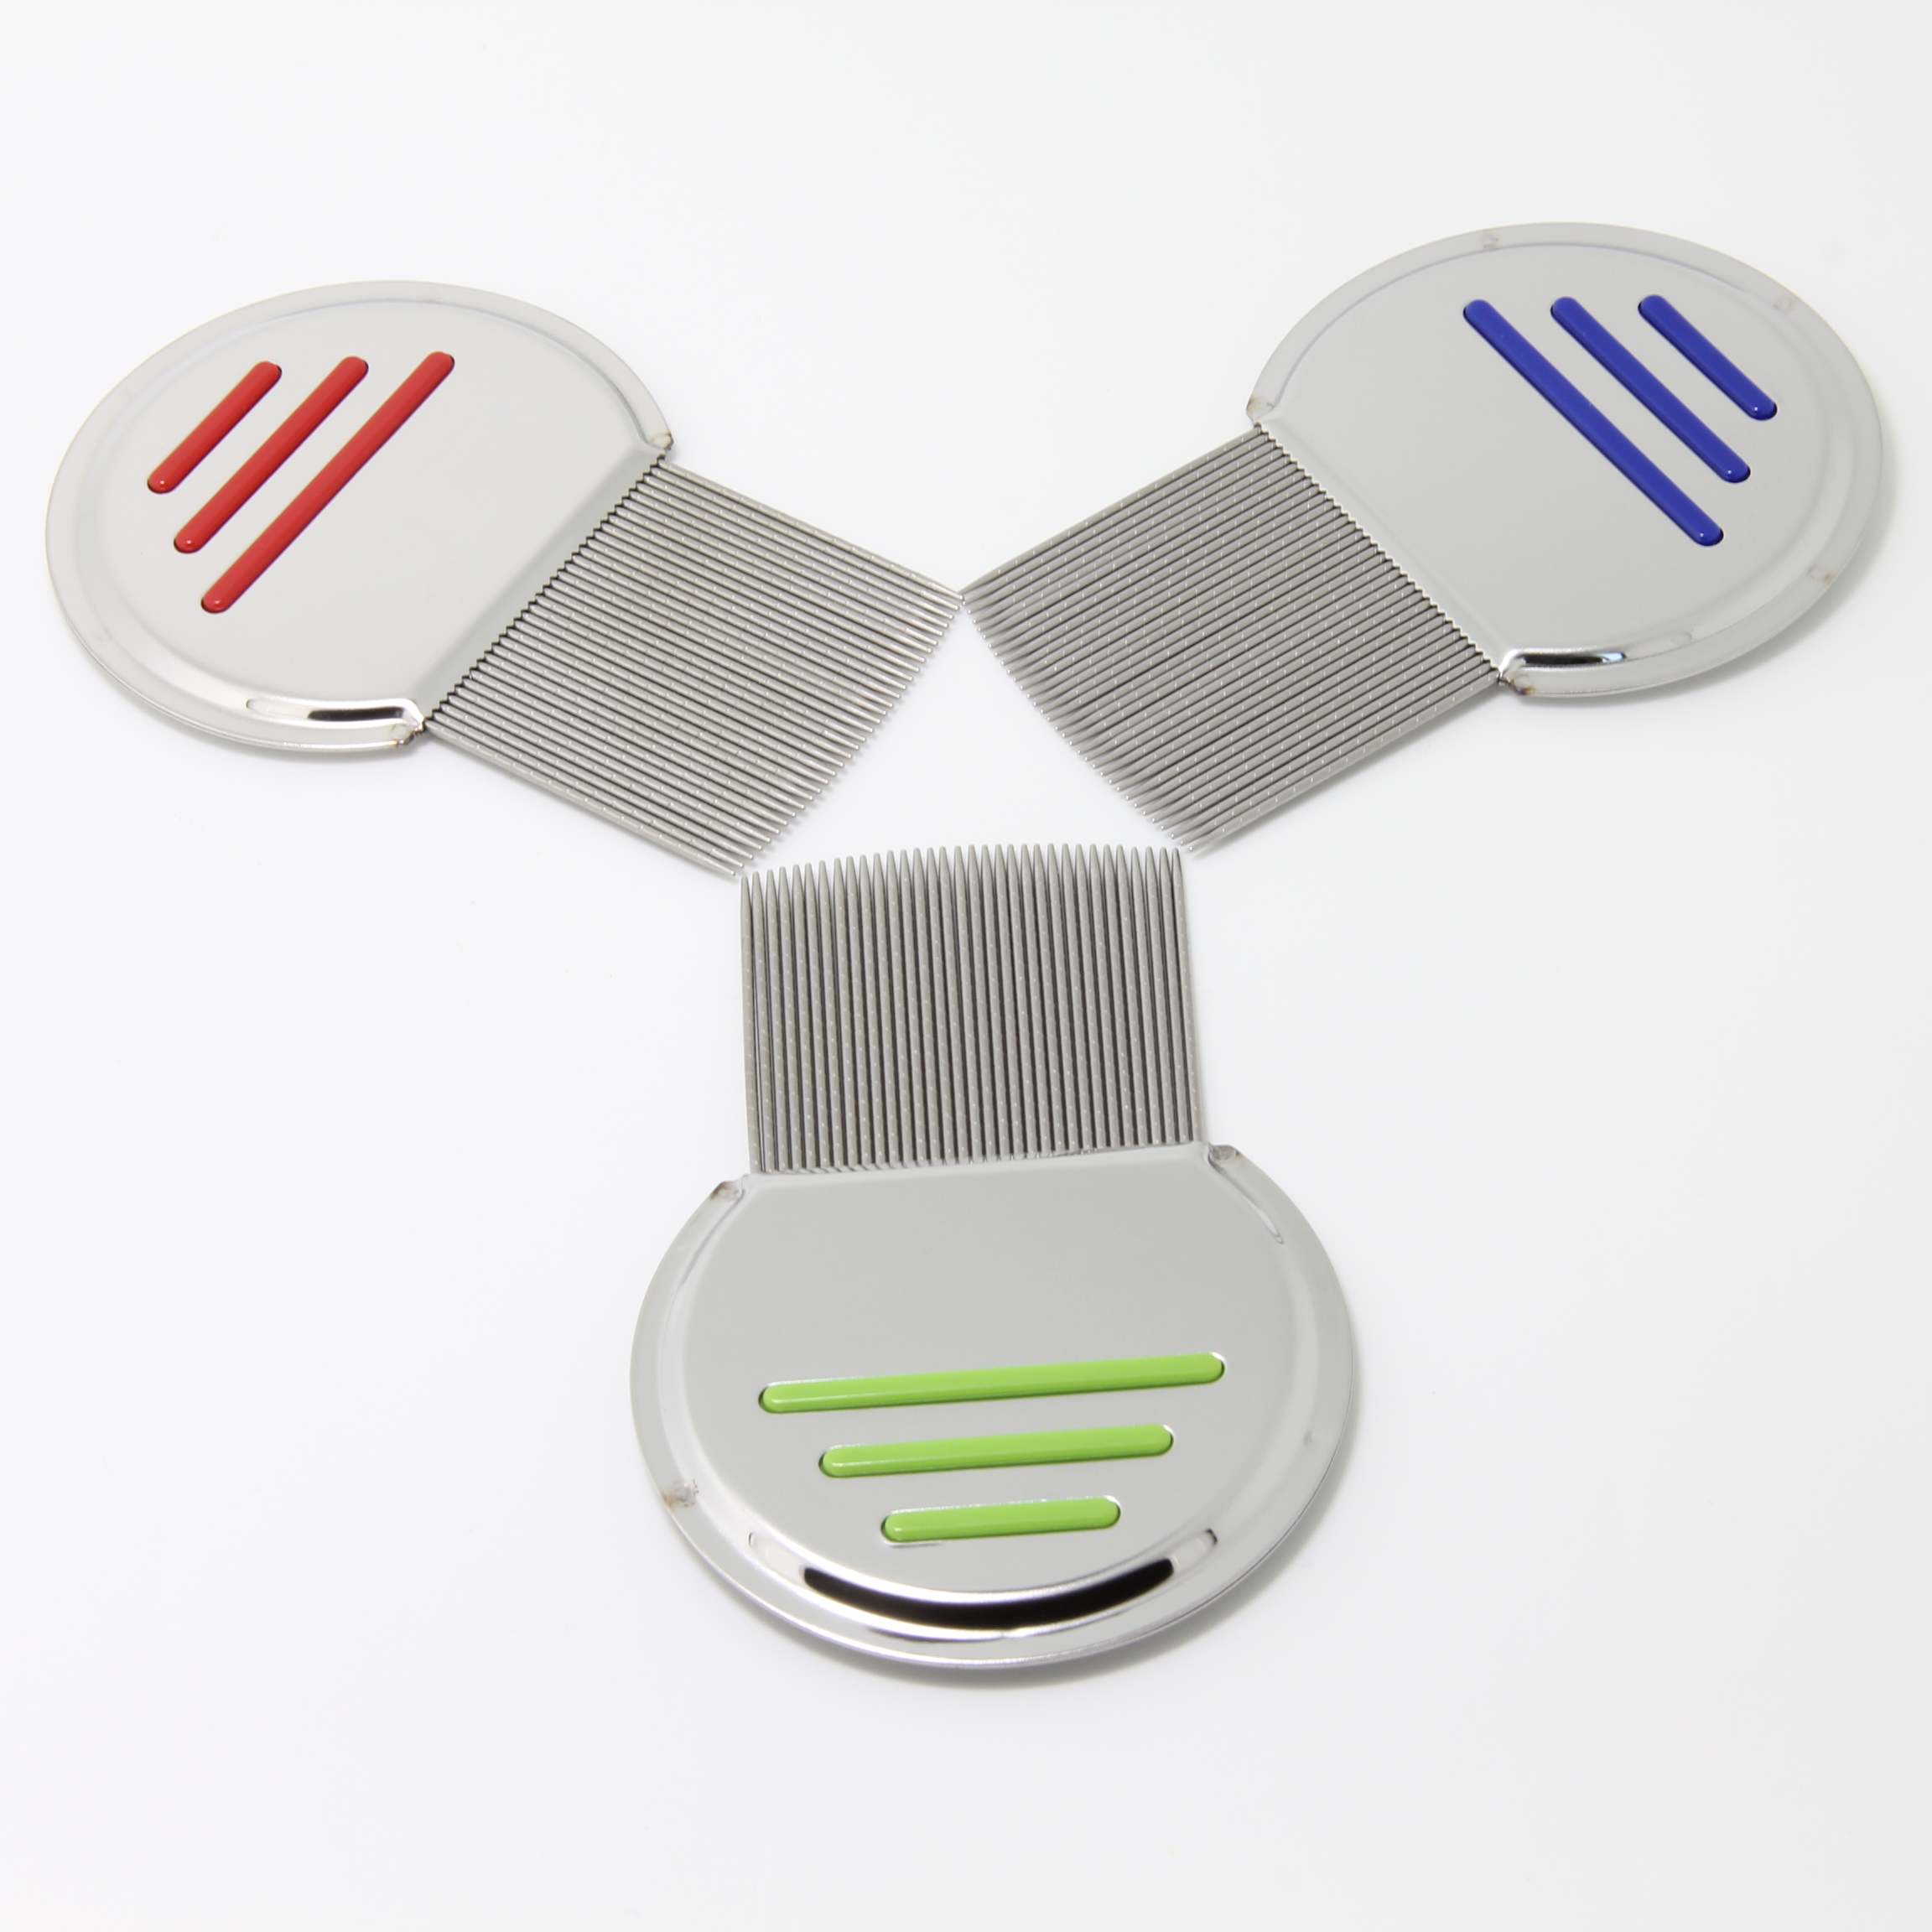 3 pcs Combs set Terminator Lice Comb Nit Free Kids Hair Rid Head lice stainless steel Metal Teeth in Combs from Beauty Health